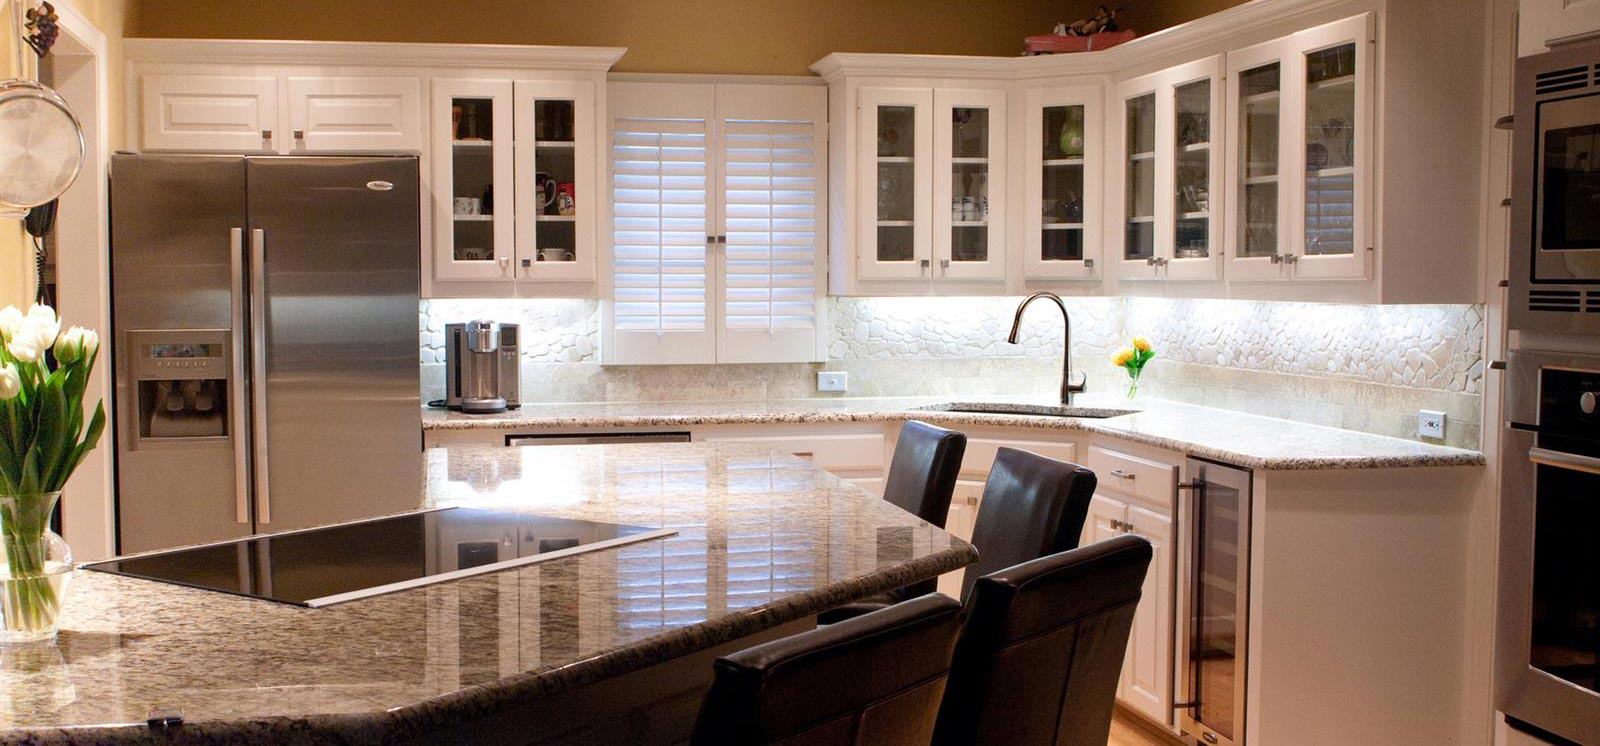 Philadelphia Kitchen Cabinet And Countertop Experts Philadelphia Kitchen  Design